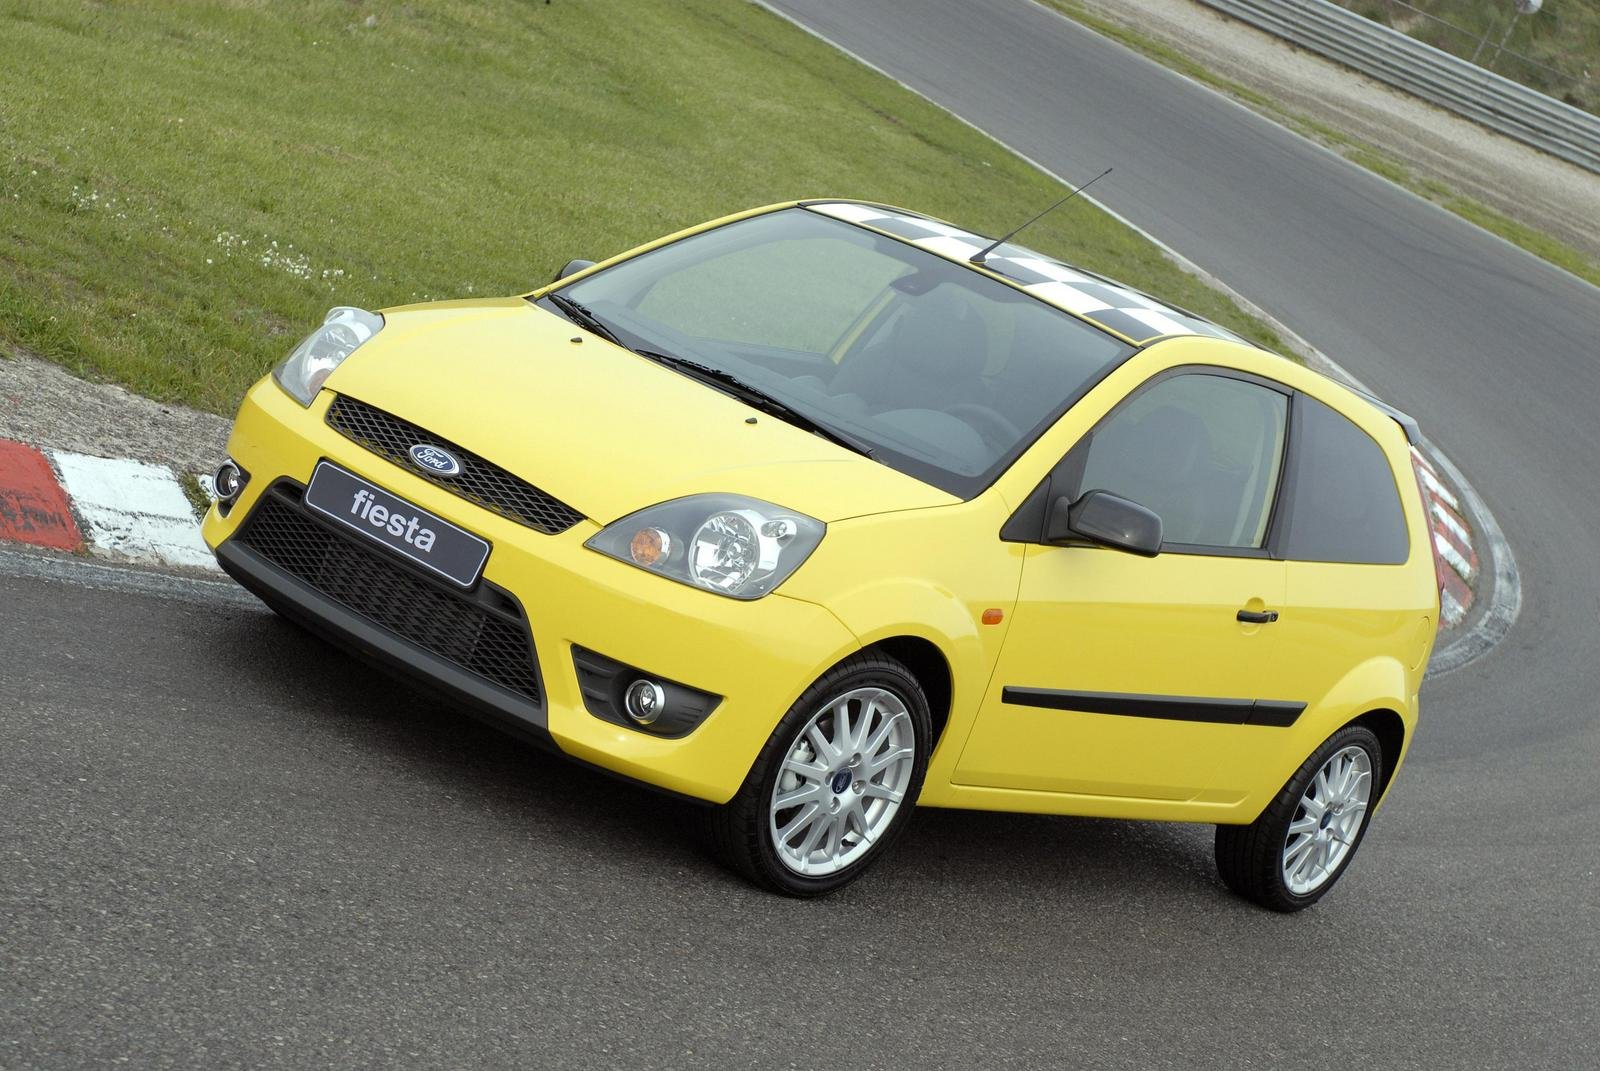 2007 ford fiesta zetec s anniversary edition picture. Black Bedroom Furniture Sets. Home Design Ideas